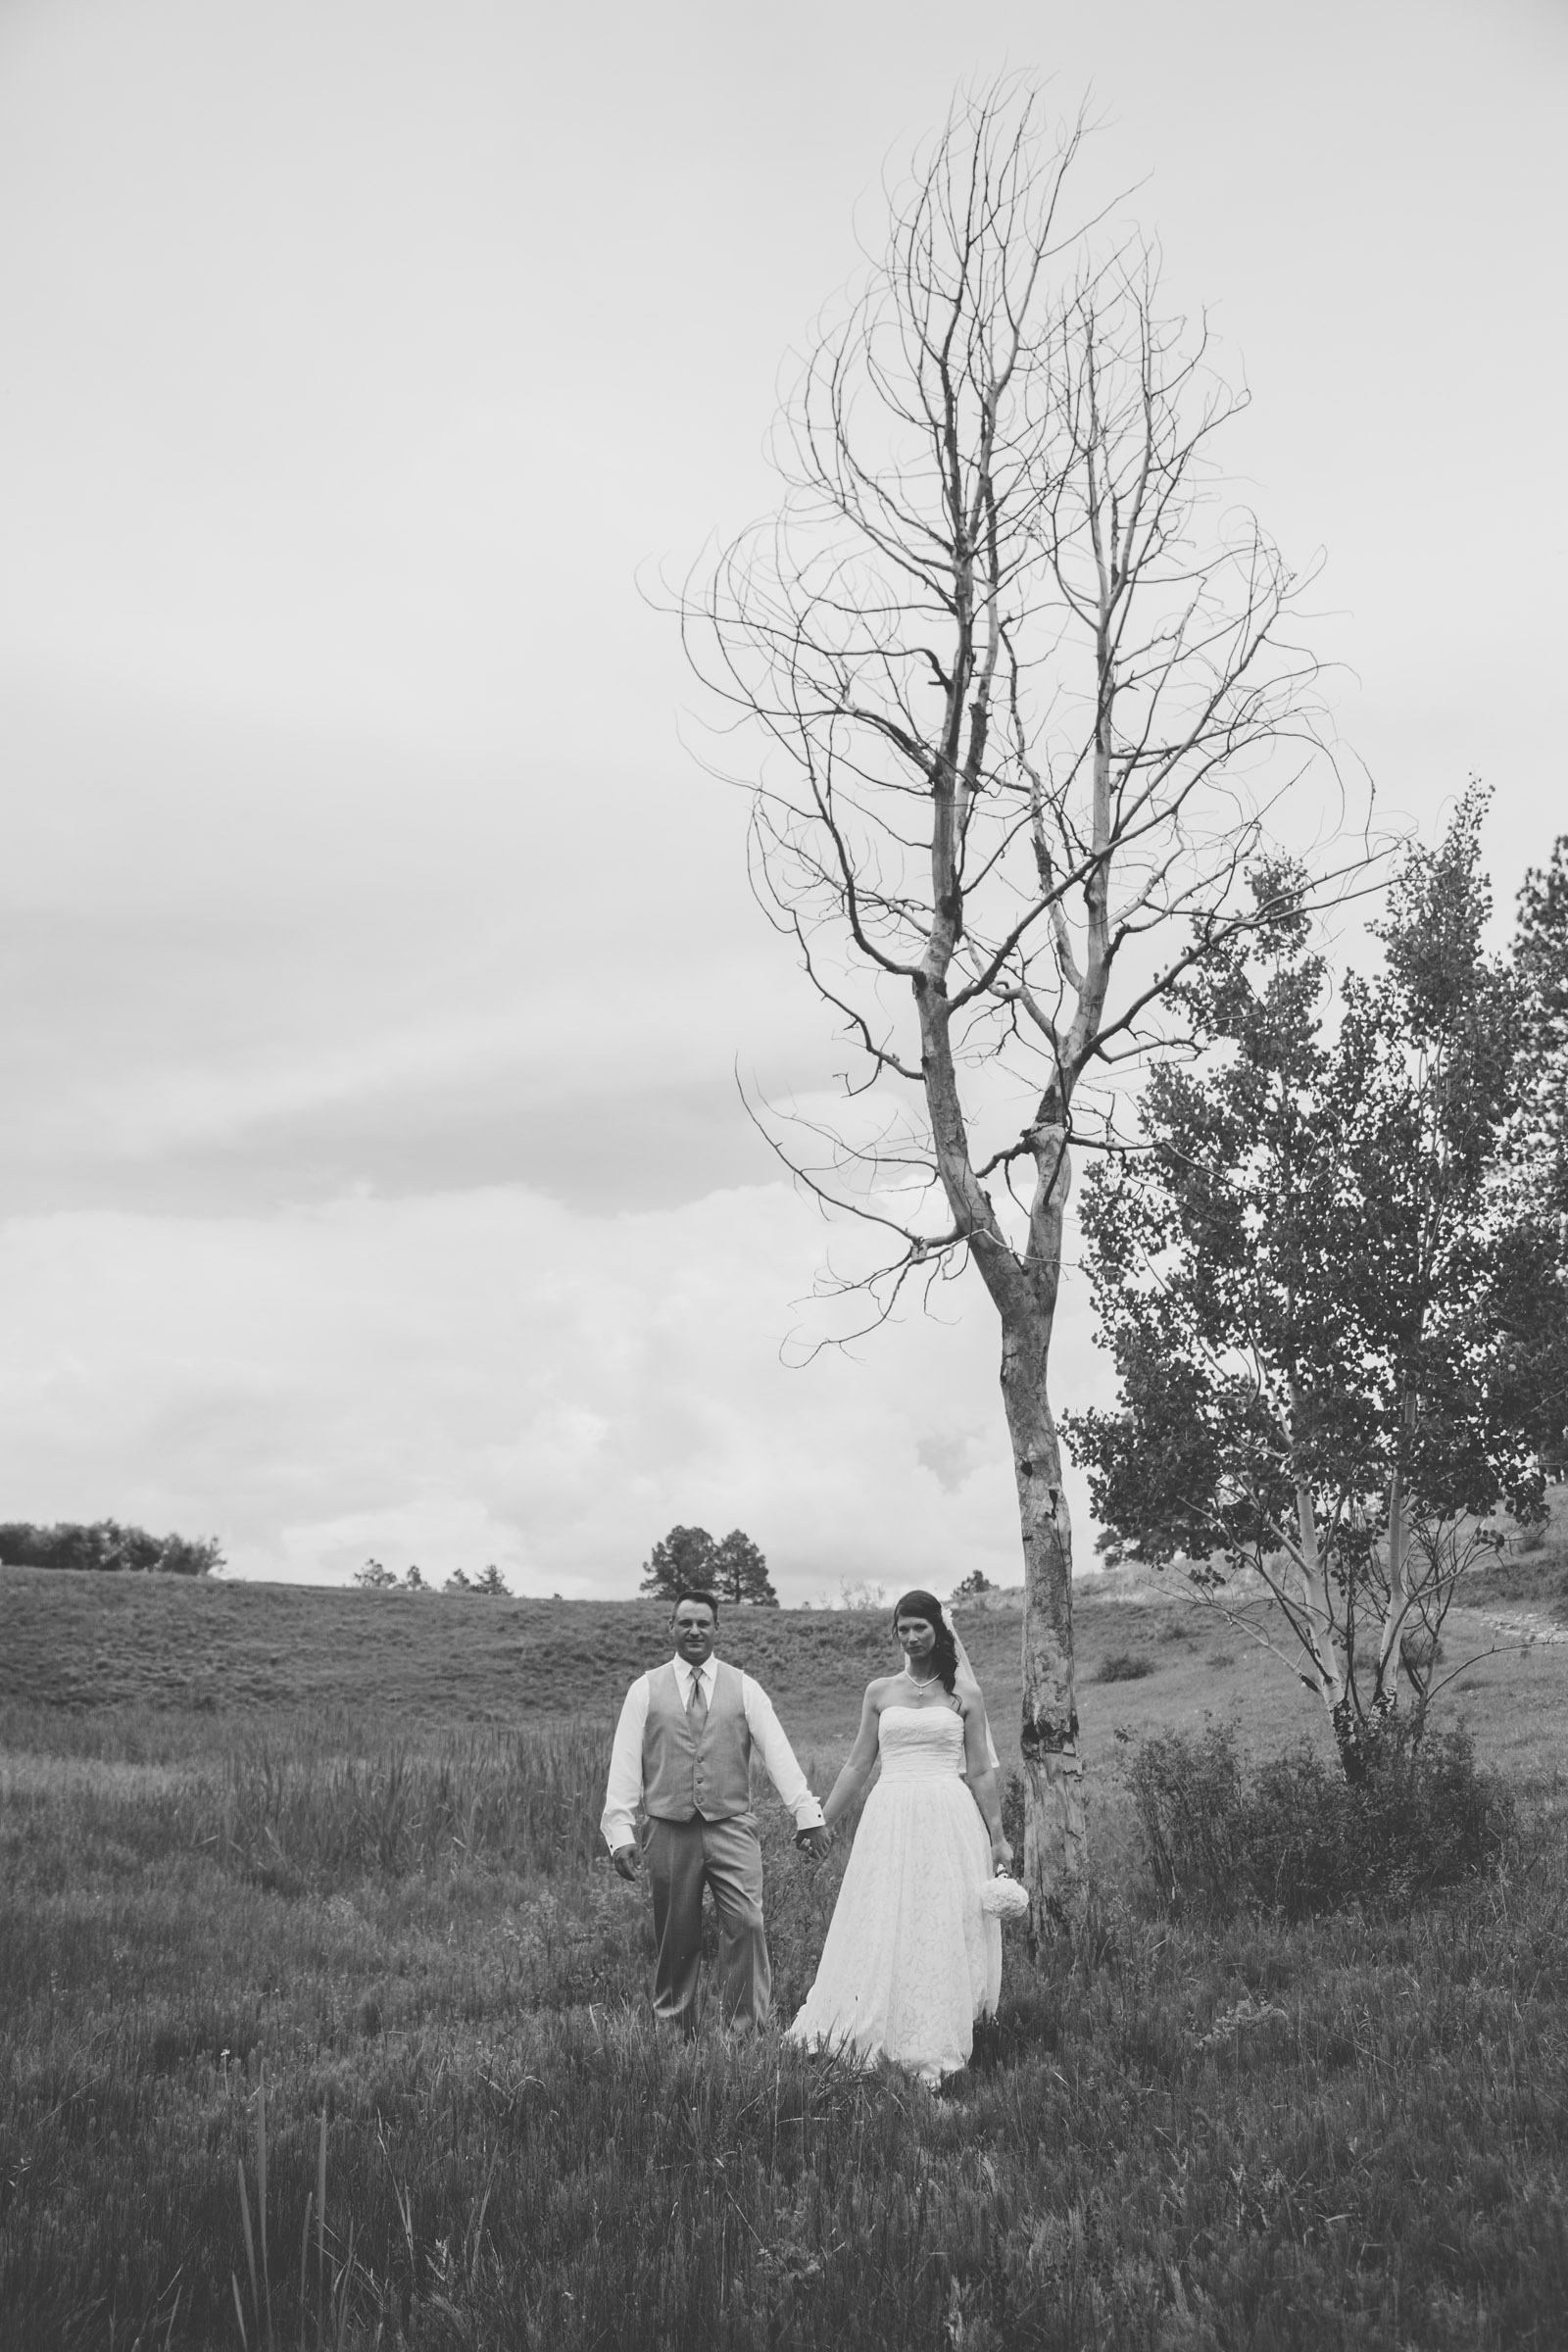 078-lake-trees-groom-bride-wedding-cabin-woods-forest-pictures-photos-dress-photography-portraits-first-look-firstlook-reveal-happy-farmington-aztec-durango-mancos-co-nm